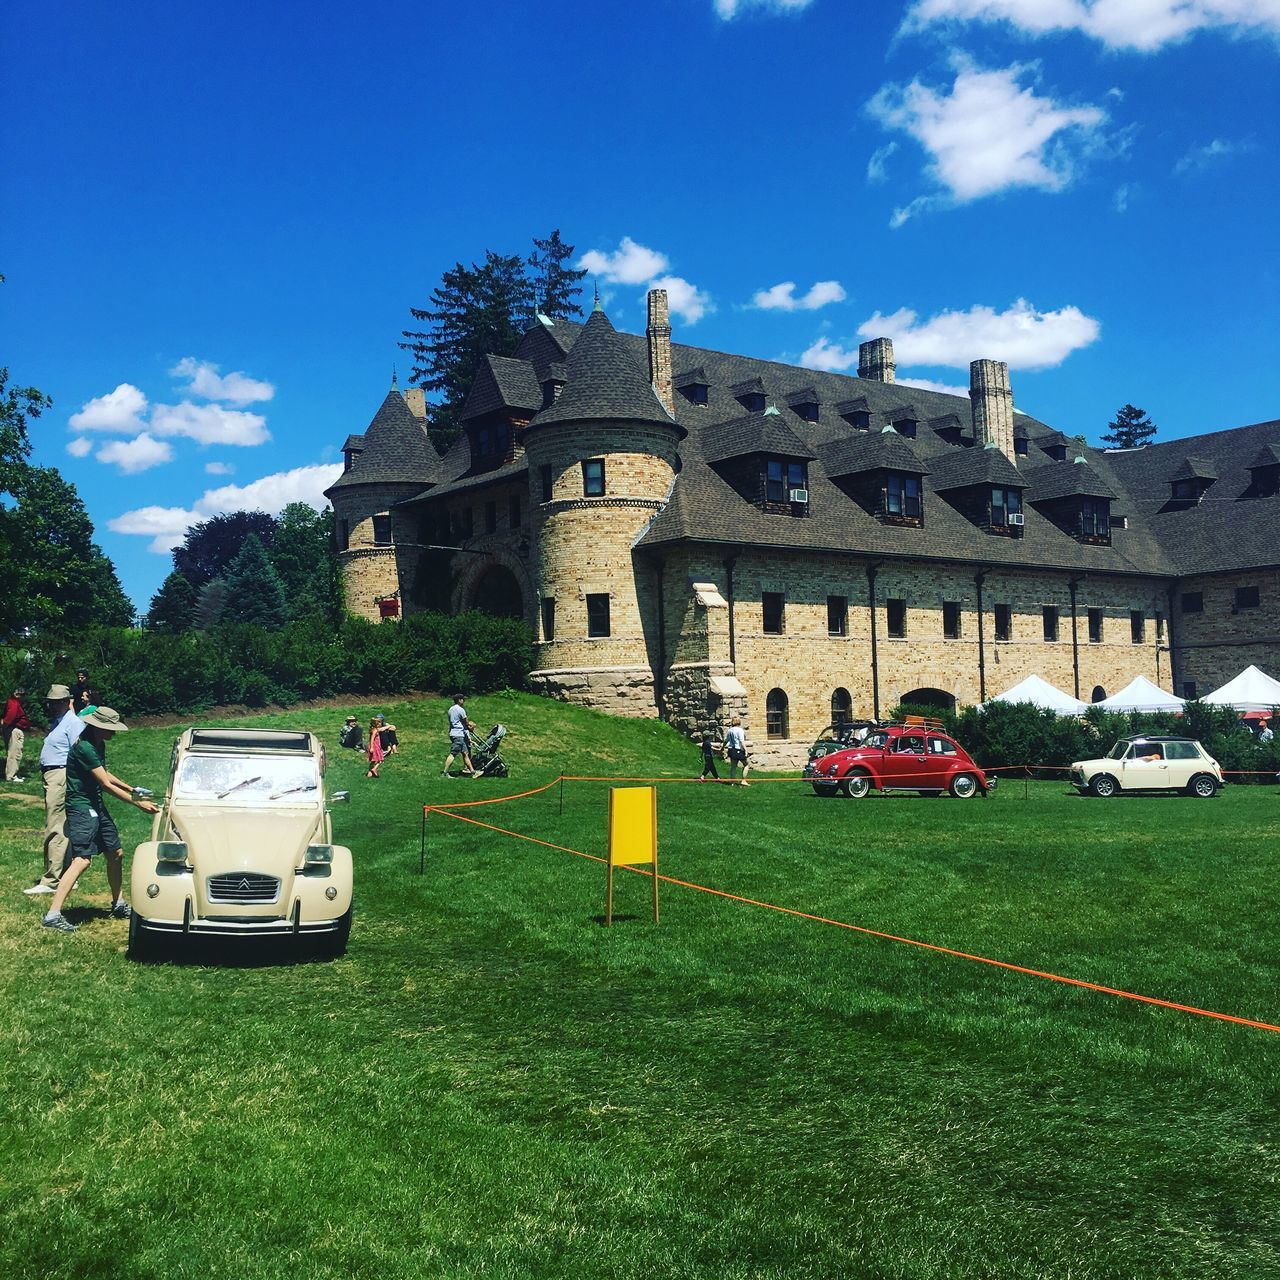 car, grass, architecture, land vehicle, building exterior, day, built structure, transportation, outdoors, travel, real people, sky, green color, tree, nature, travel destinations, men, people